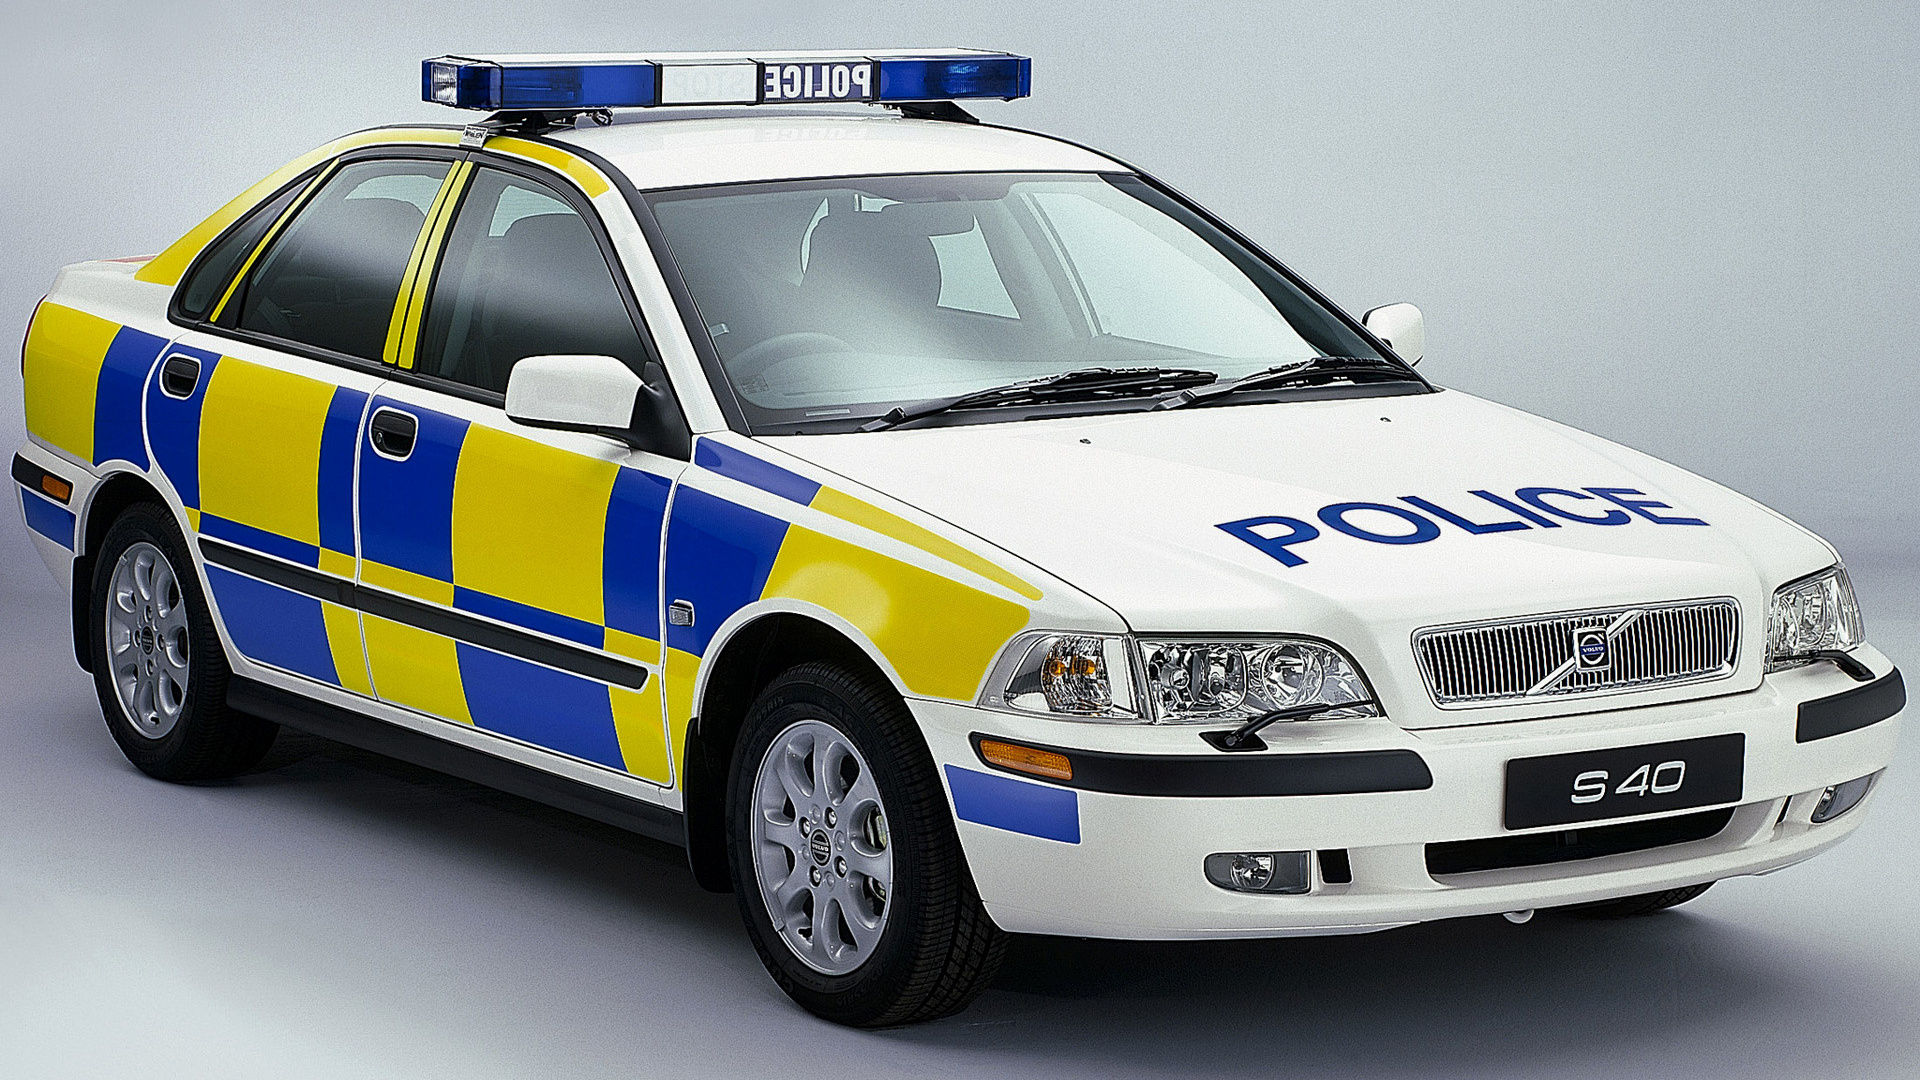 2000 Volvo S40 Police (UK) - Wallpapers and HD Images ...